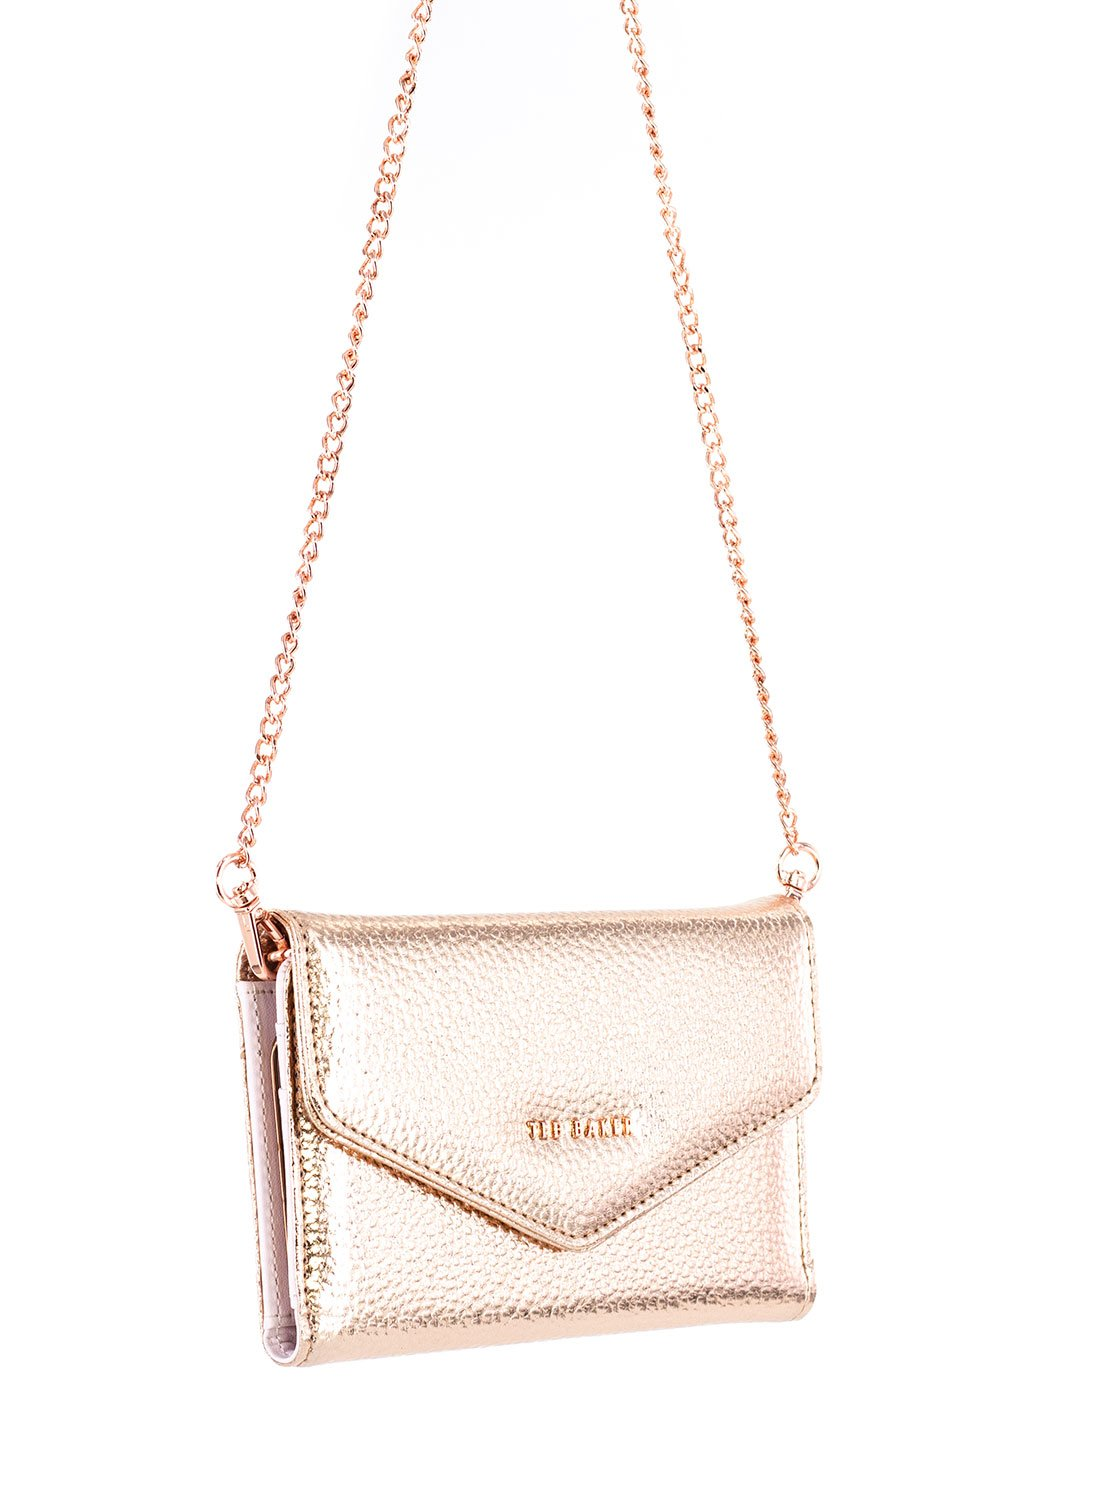 Arm chain image of the Ted Baker Apple iPhone 8 Plus / 7 Plus phone case in Rose Gold